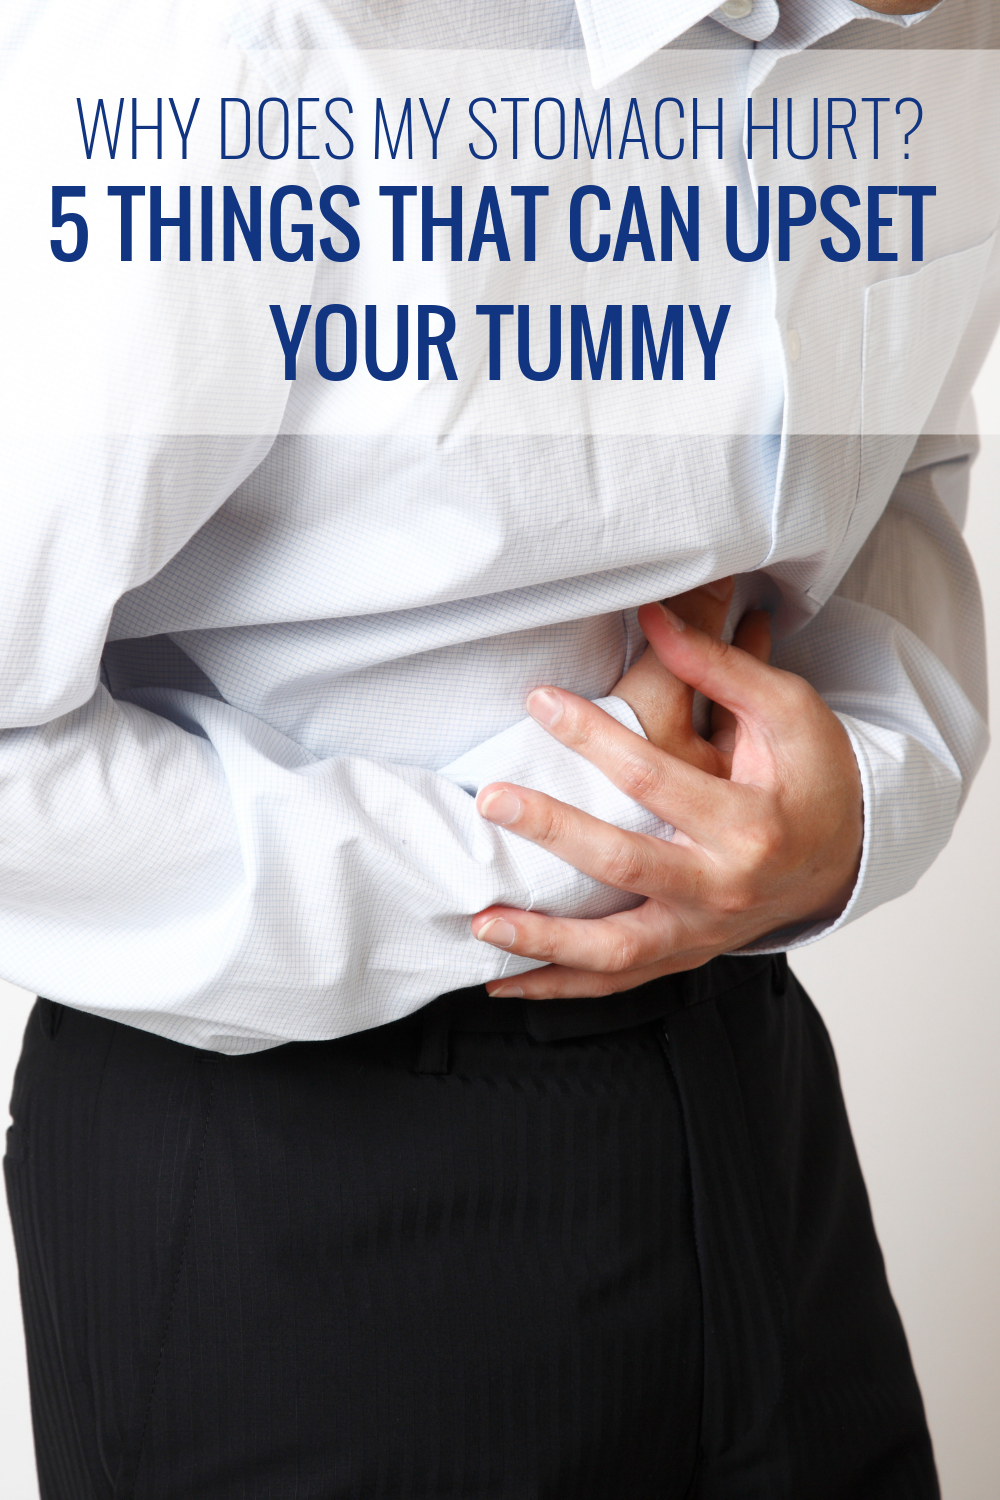 Why Does My Stomach Hurt? 5 Things That Can Upset Your Tummy